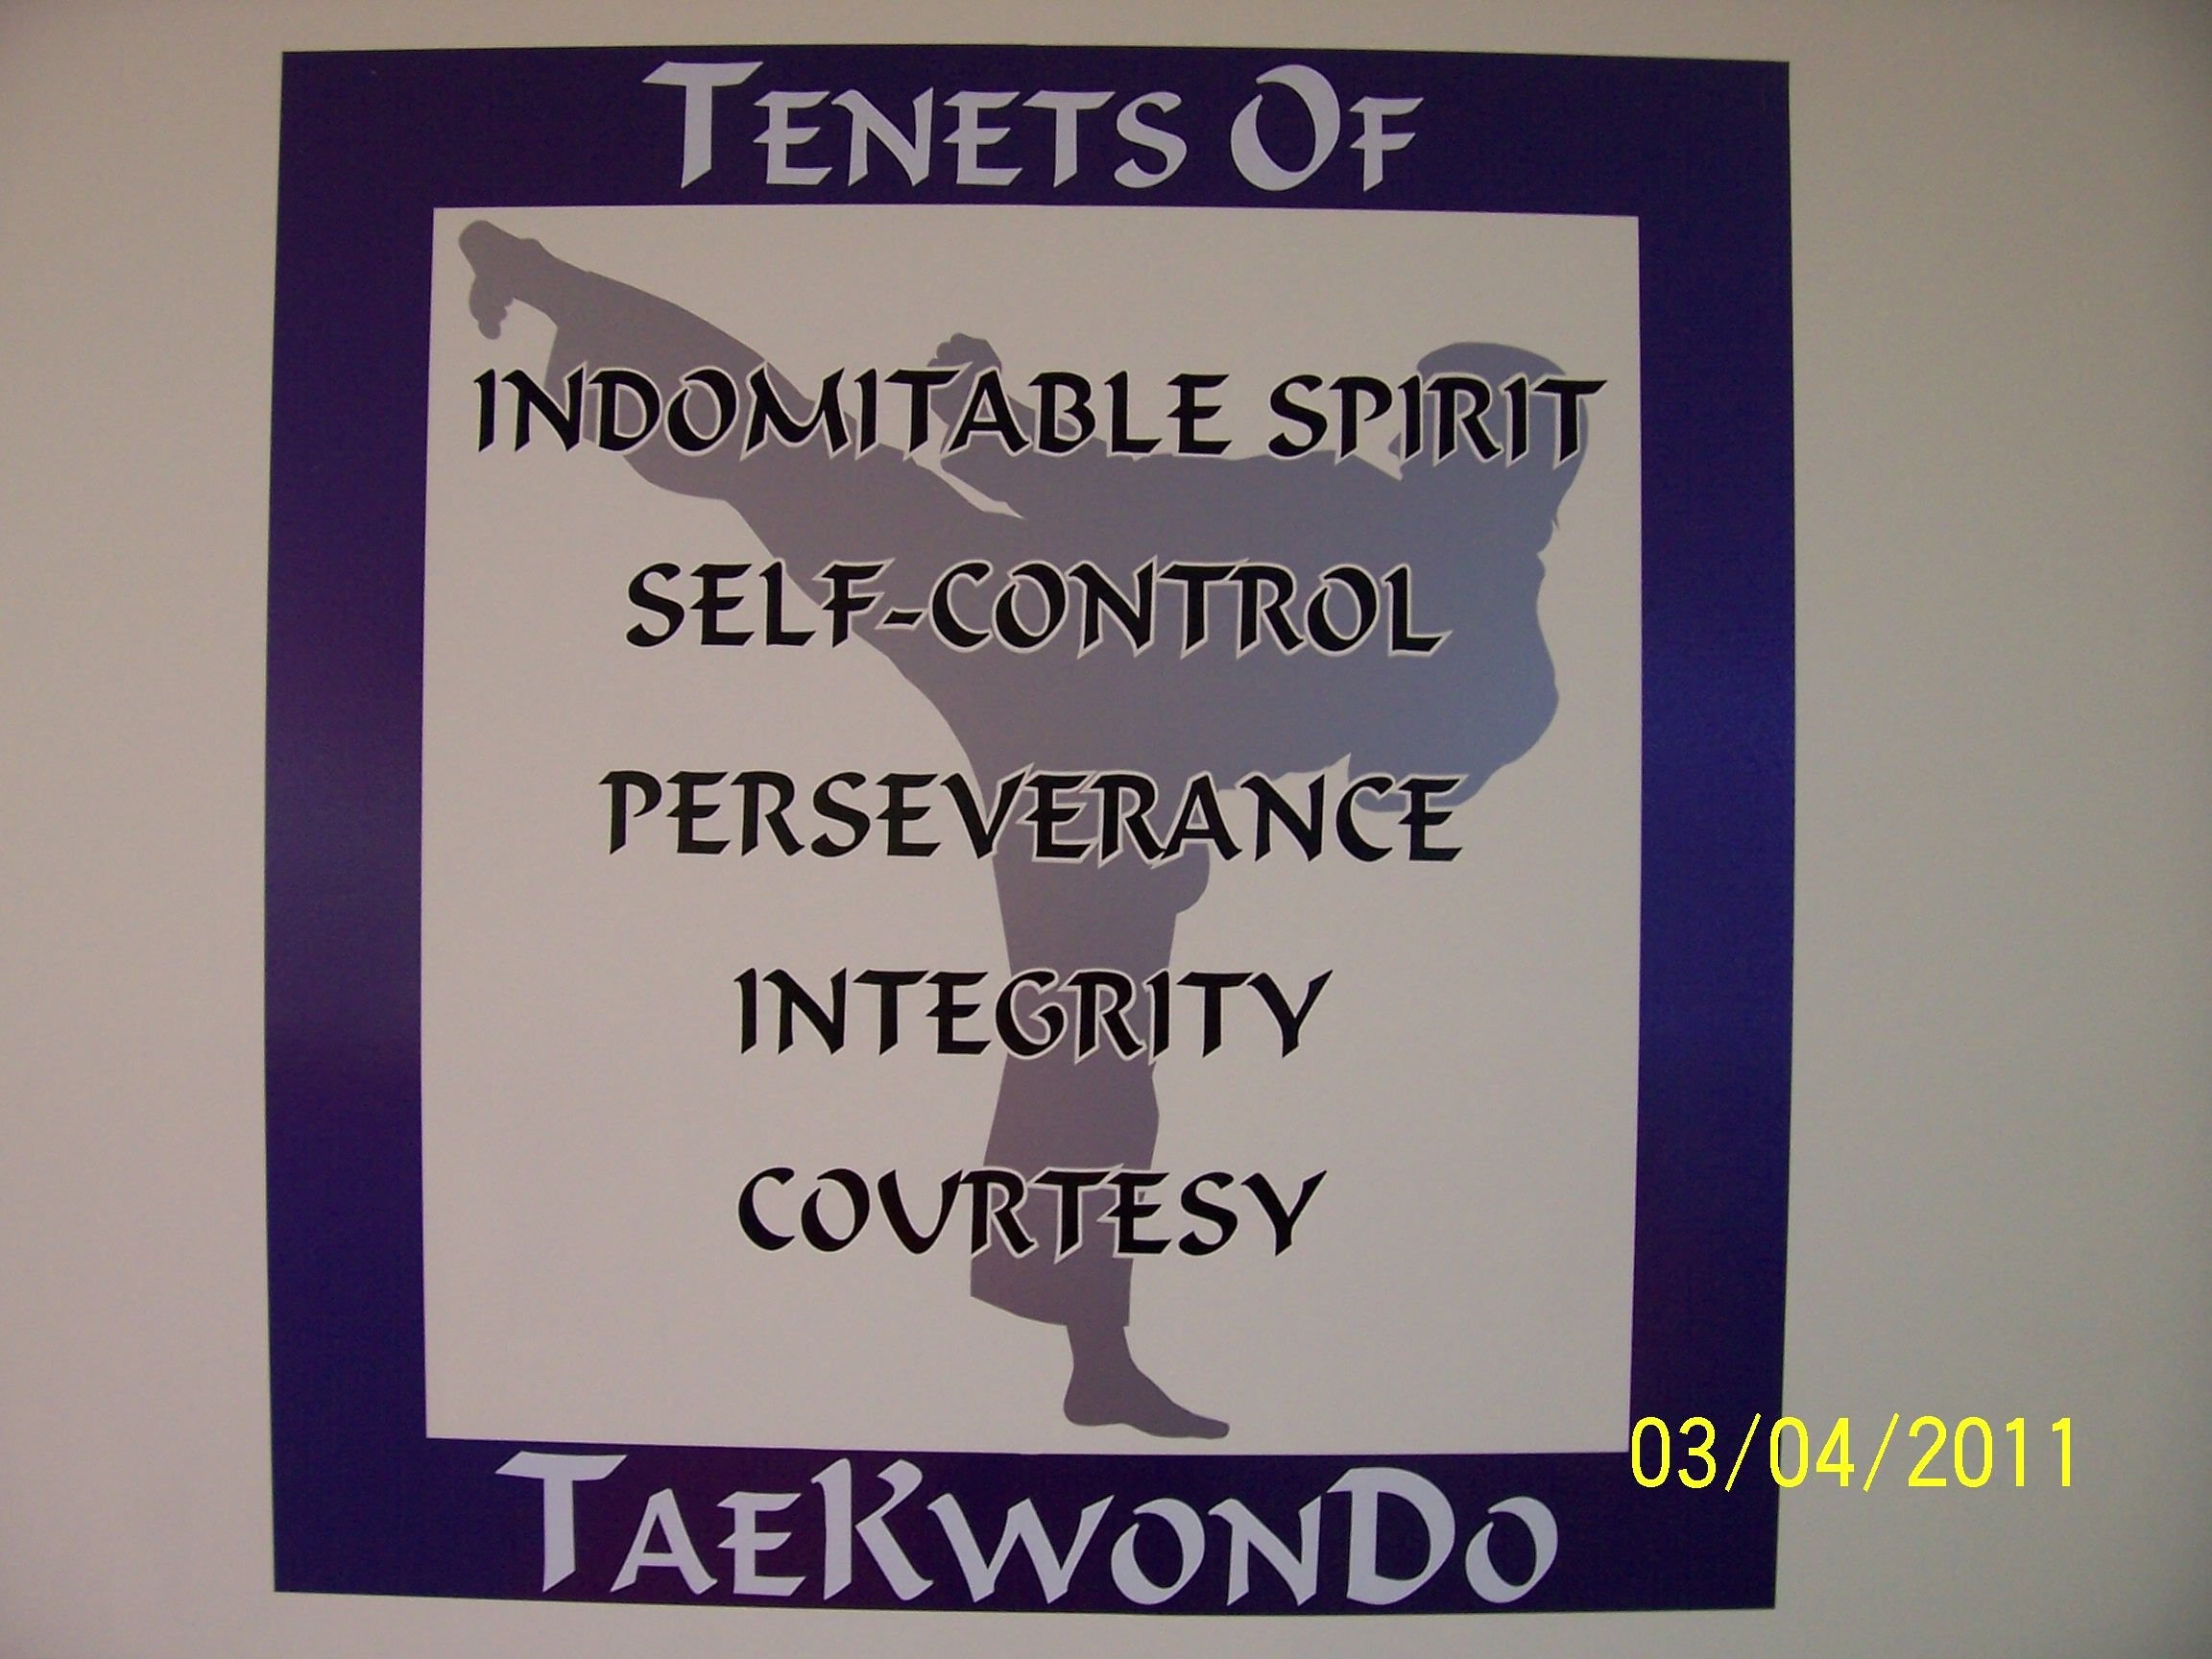 tae kwon do the way of Parker academy of martial arts this is why one could say tae kwon do is a way of life to ultimately enable ourselves to lead more valuable lives.